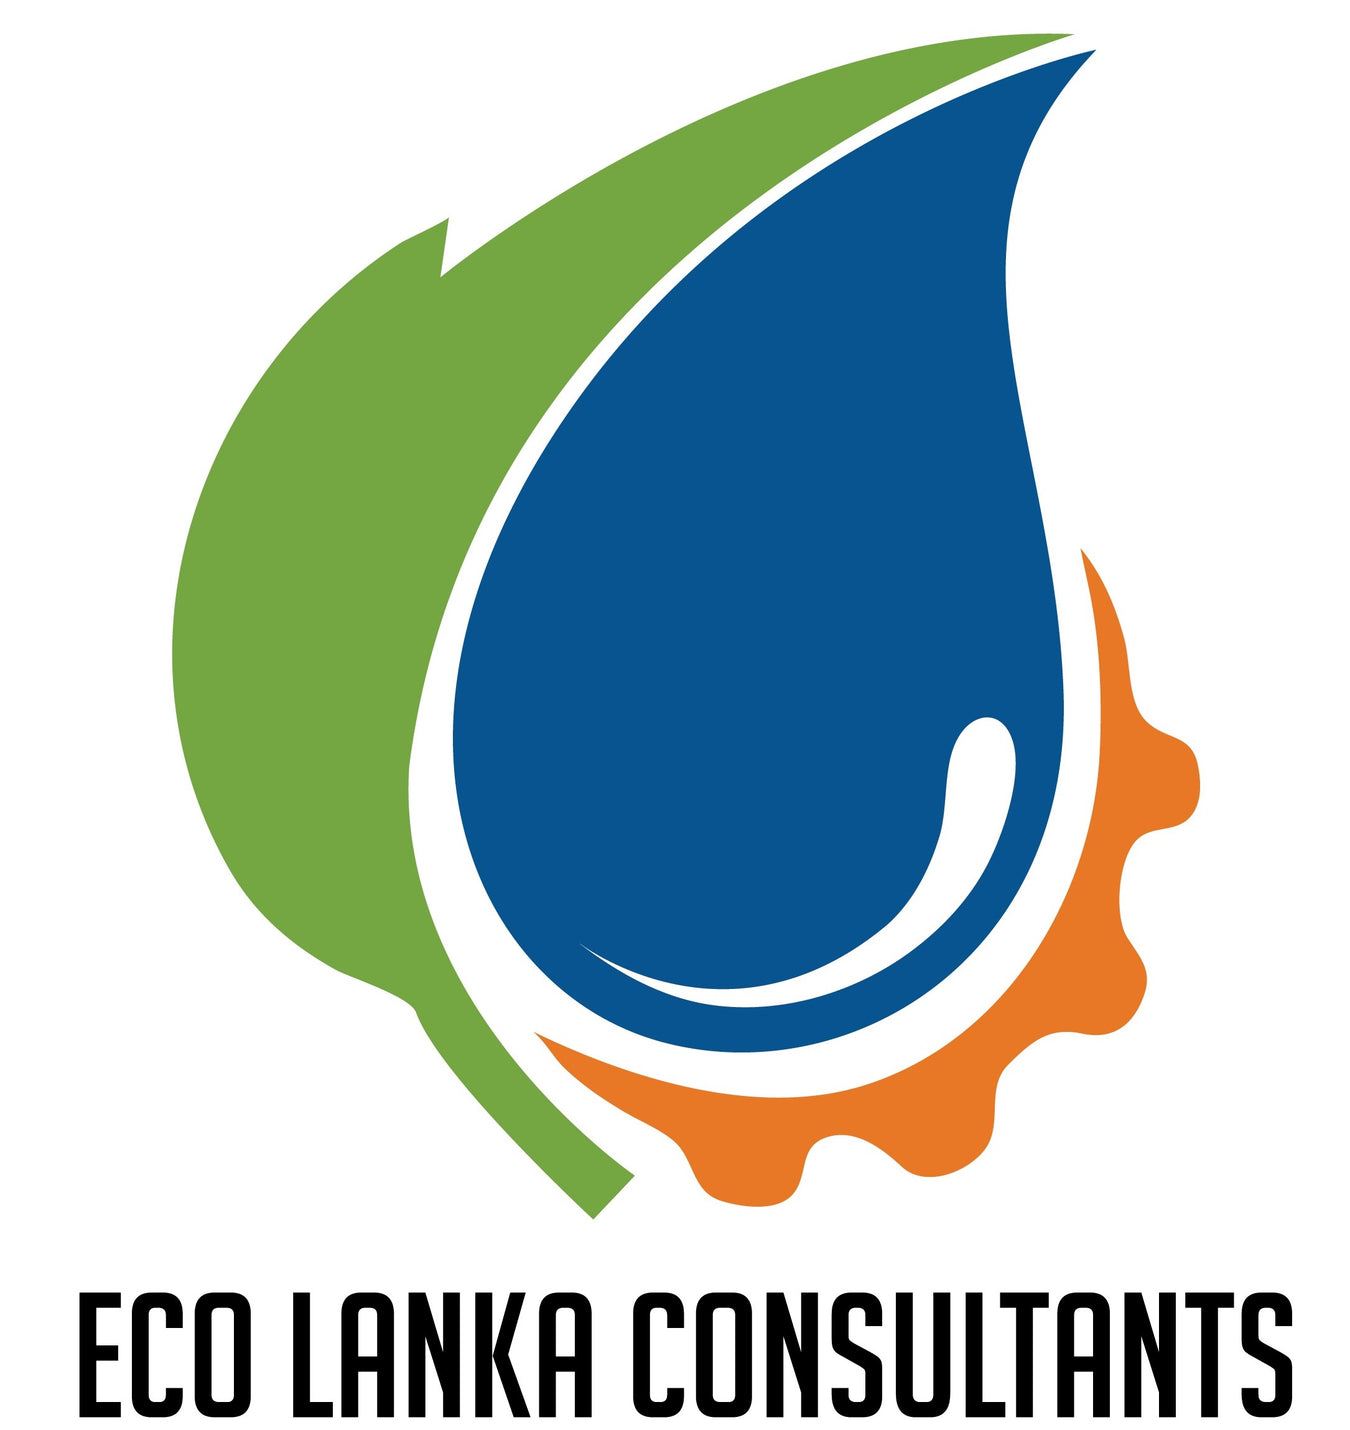 eco lanka consultants, eco friendly products